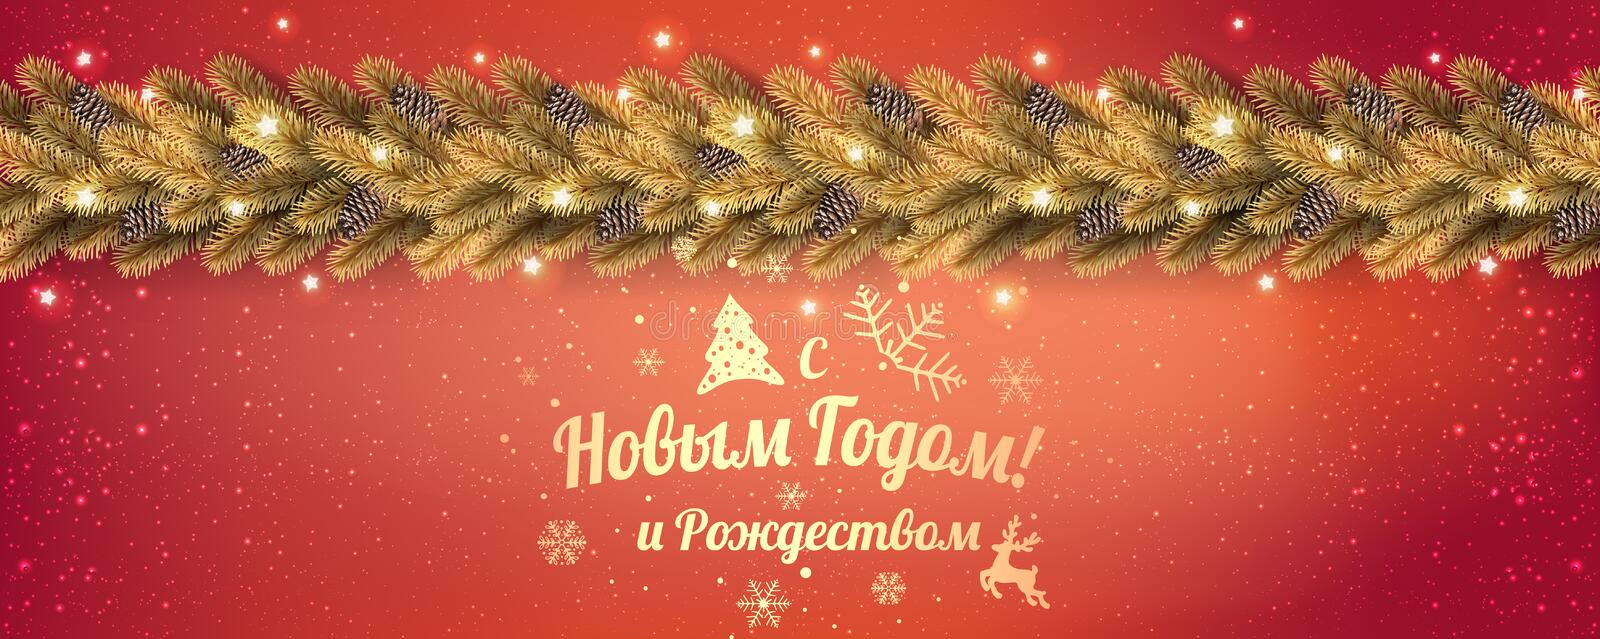 Gold Text in Russian language Happy New year and Merry Christmas on red shiny background with garland of Christmas tree branches. Snowflakes, stars. Xmas and royalty free illustration